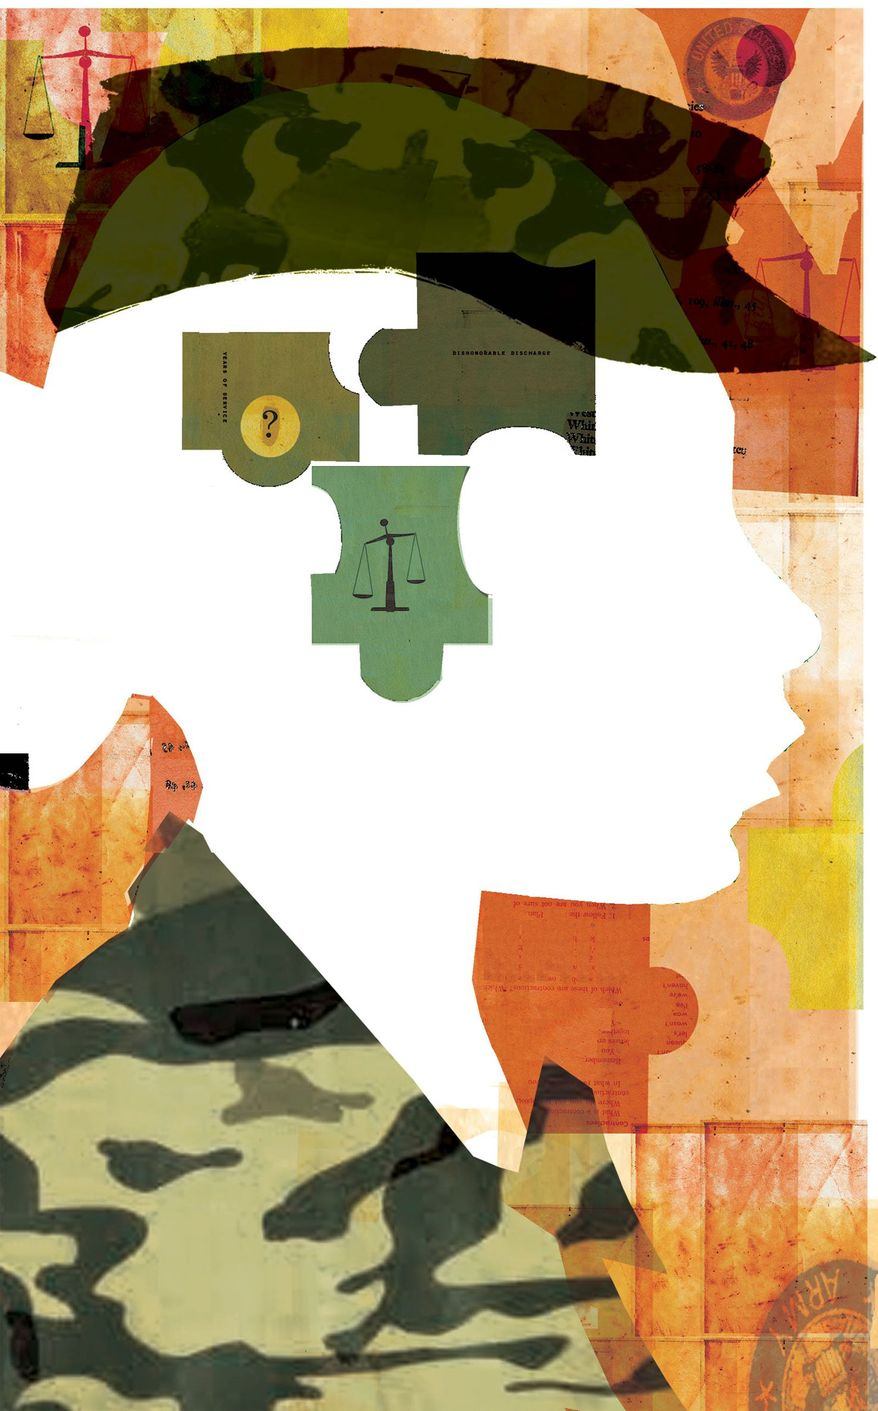 Illustration on dealing with sexual assaults in the military by Donna Grethen/Tribune Content Agency